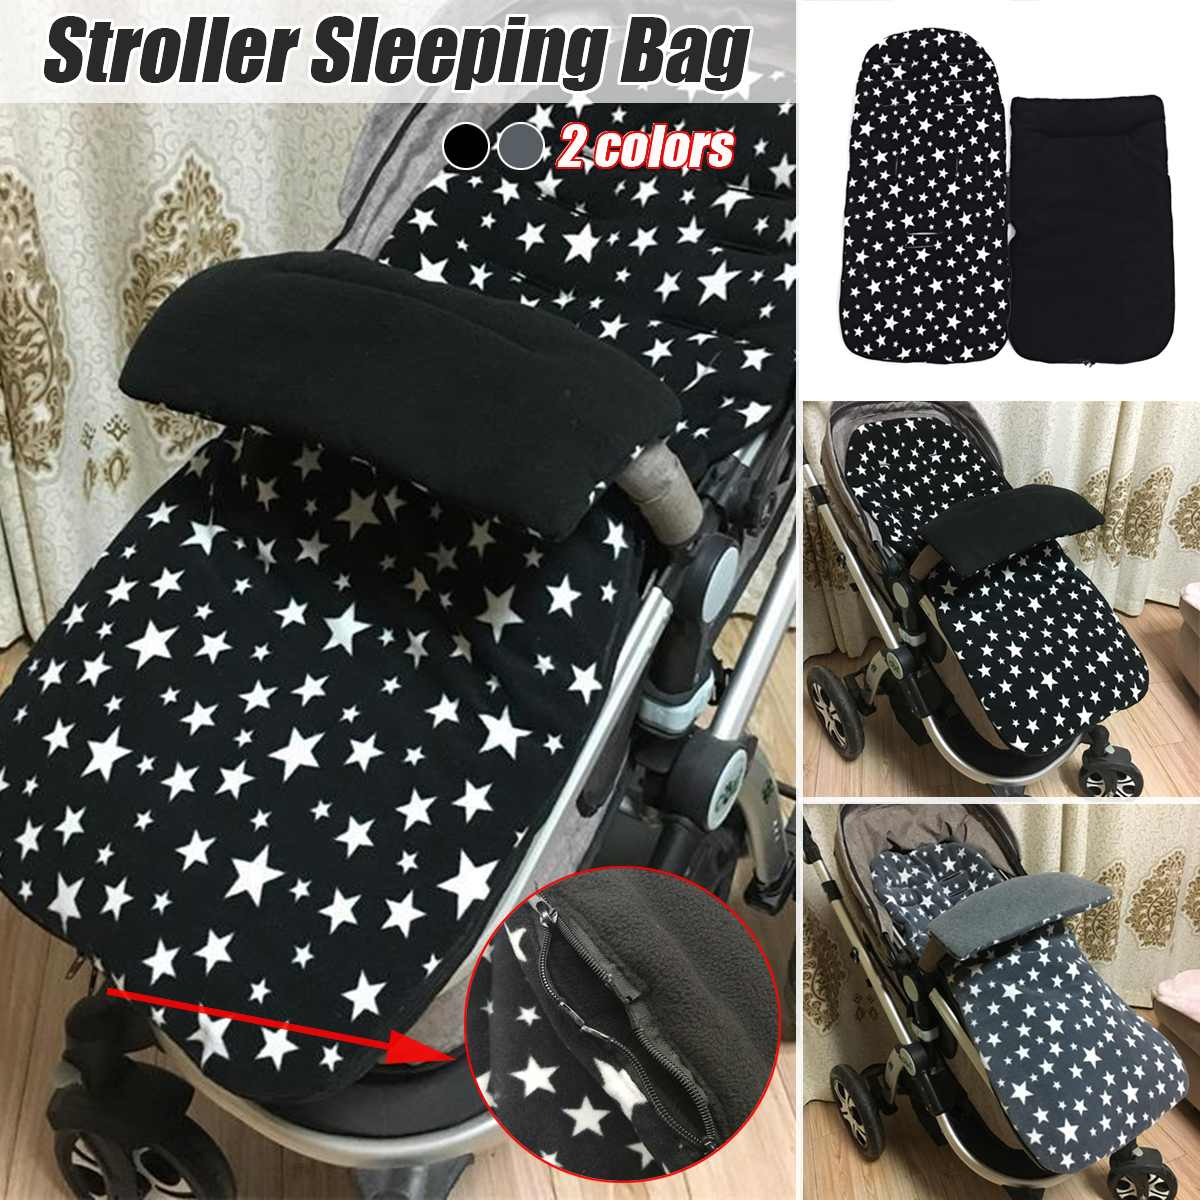 Universal Baby Toddler Winter Stroller Thick Star Polar Fleece Sleeping Bag Keep Warm Newborn Envelope Diaper In Stroller